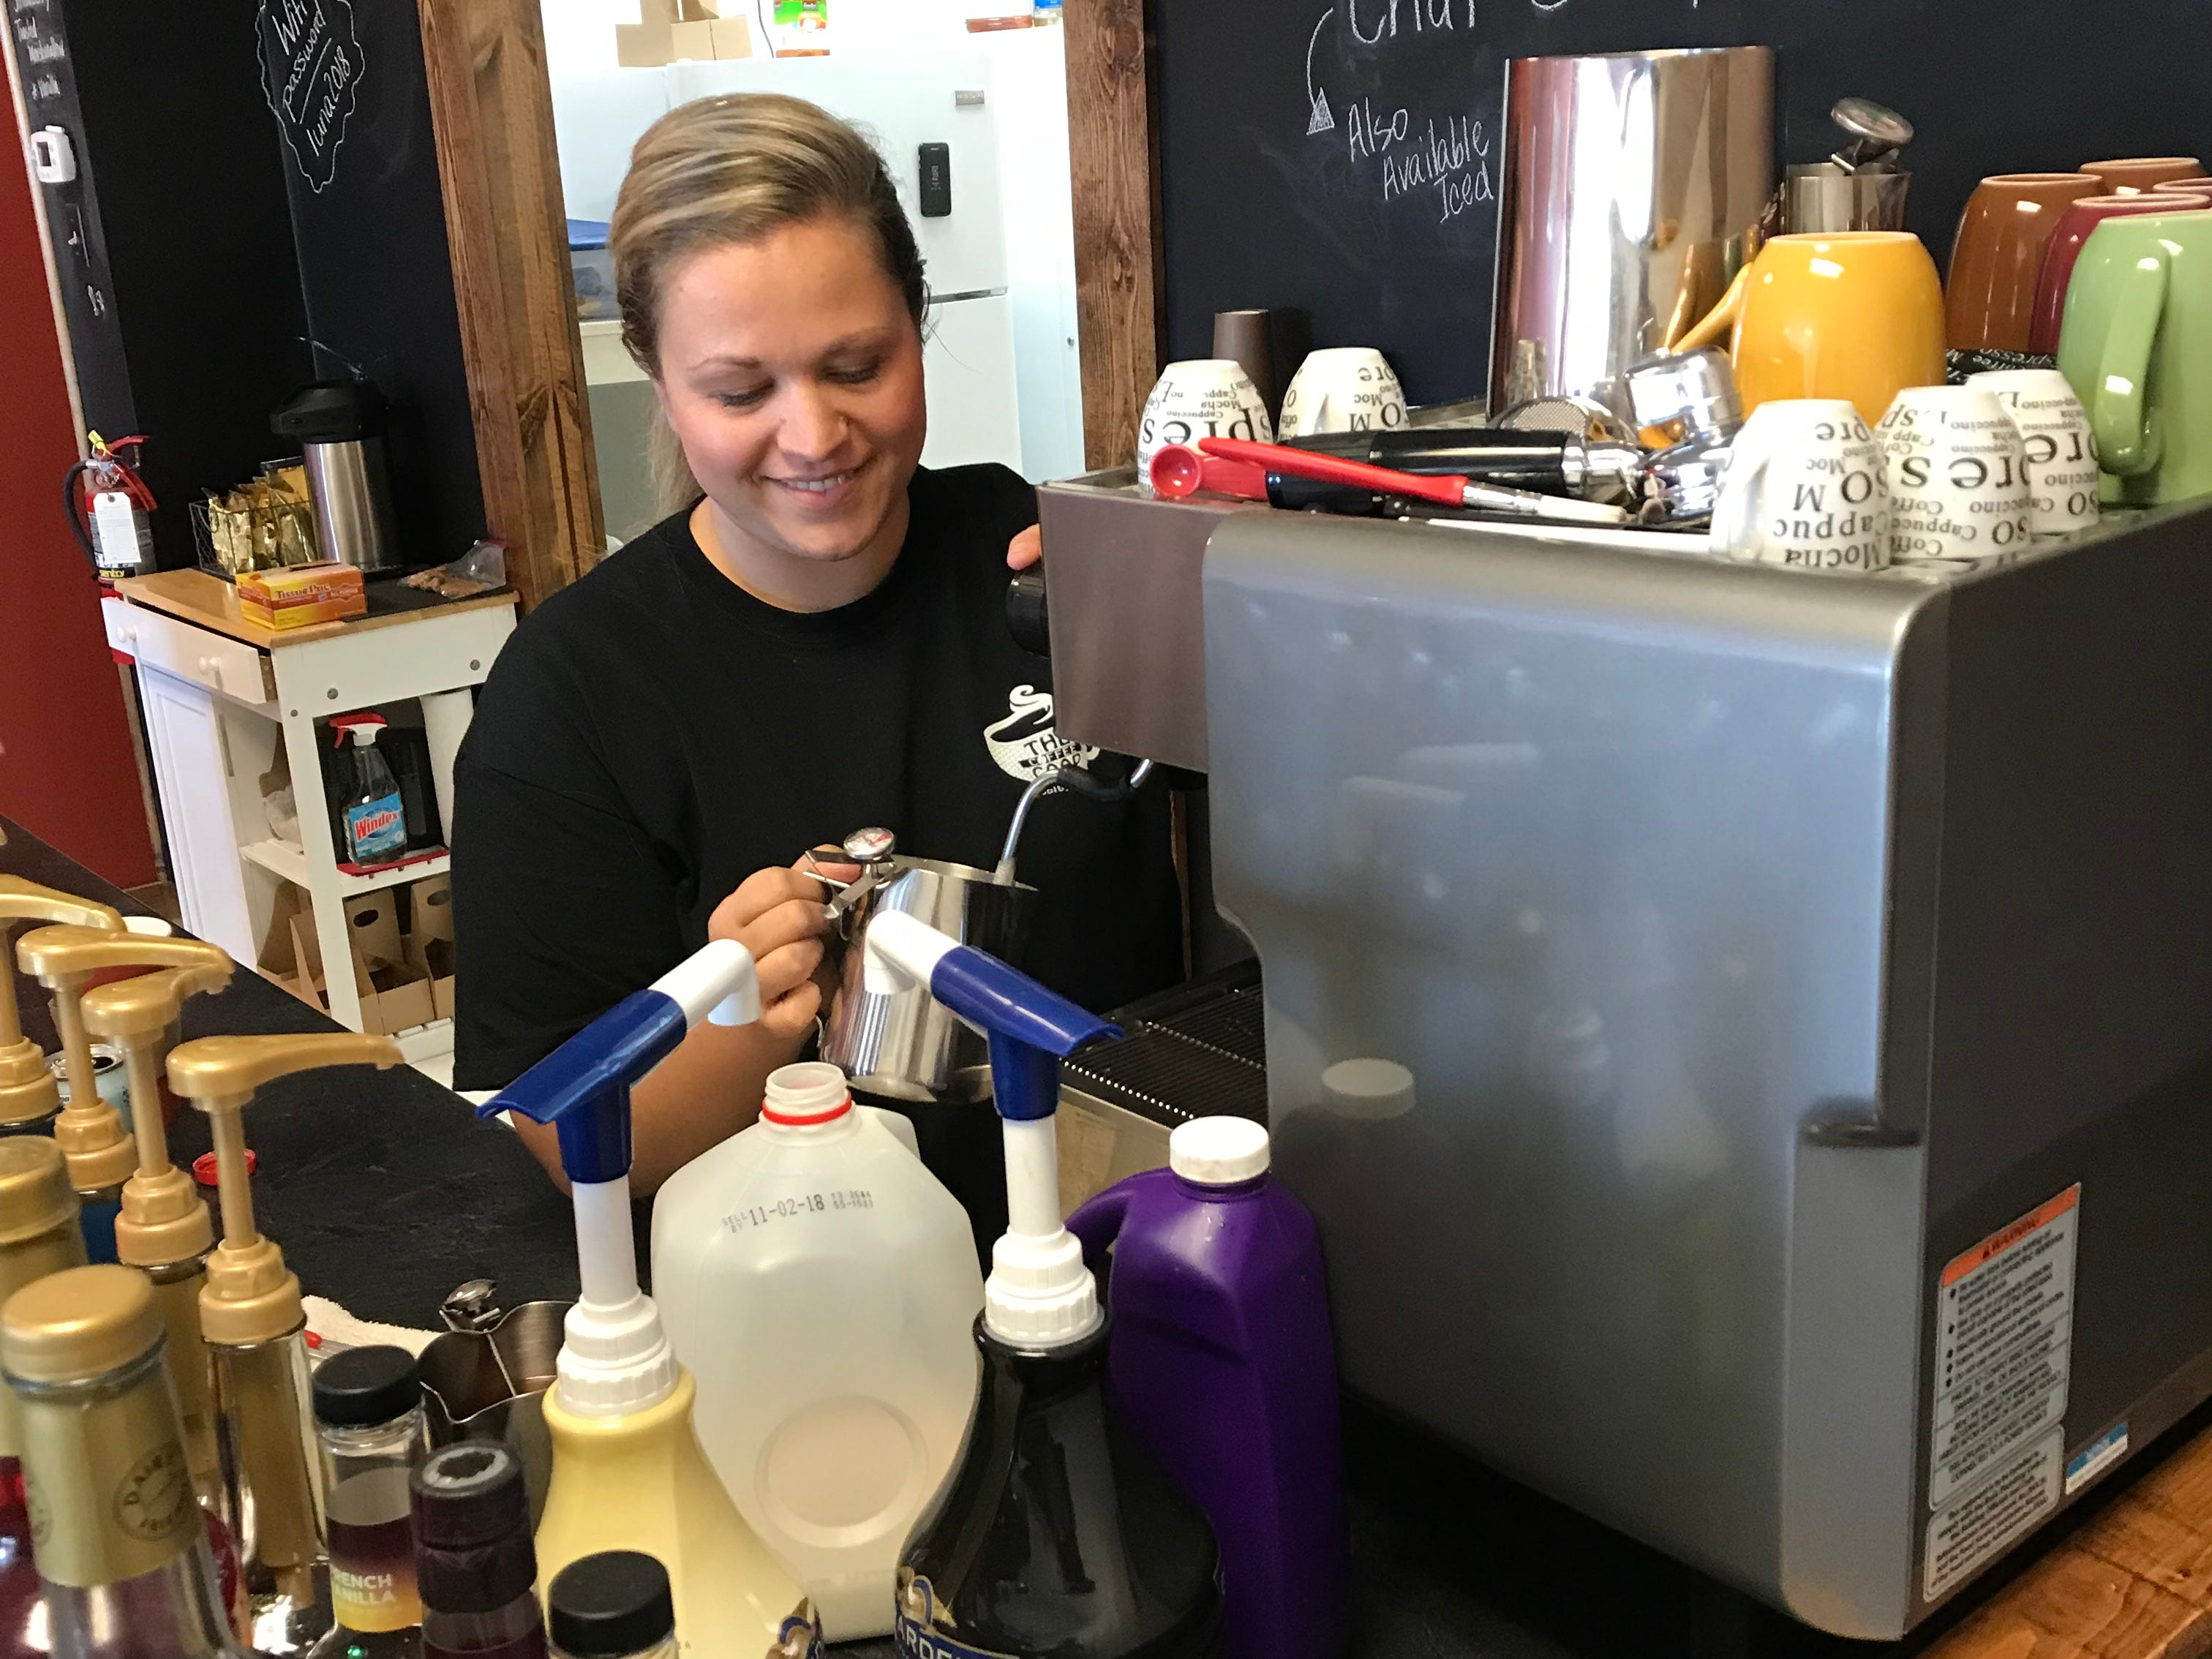 Ariel Oehmichen makes coffee with her espresso maker at The Coffee Coop in Colby.